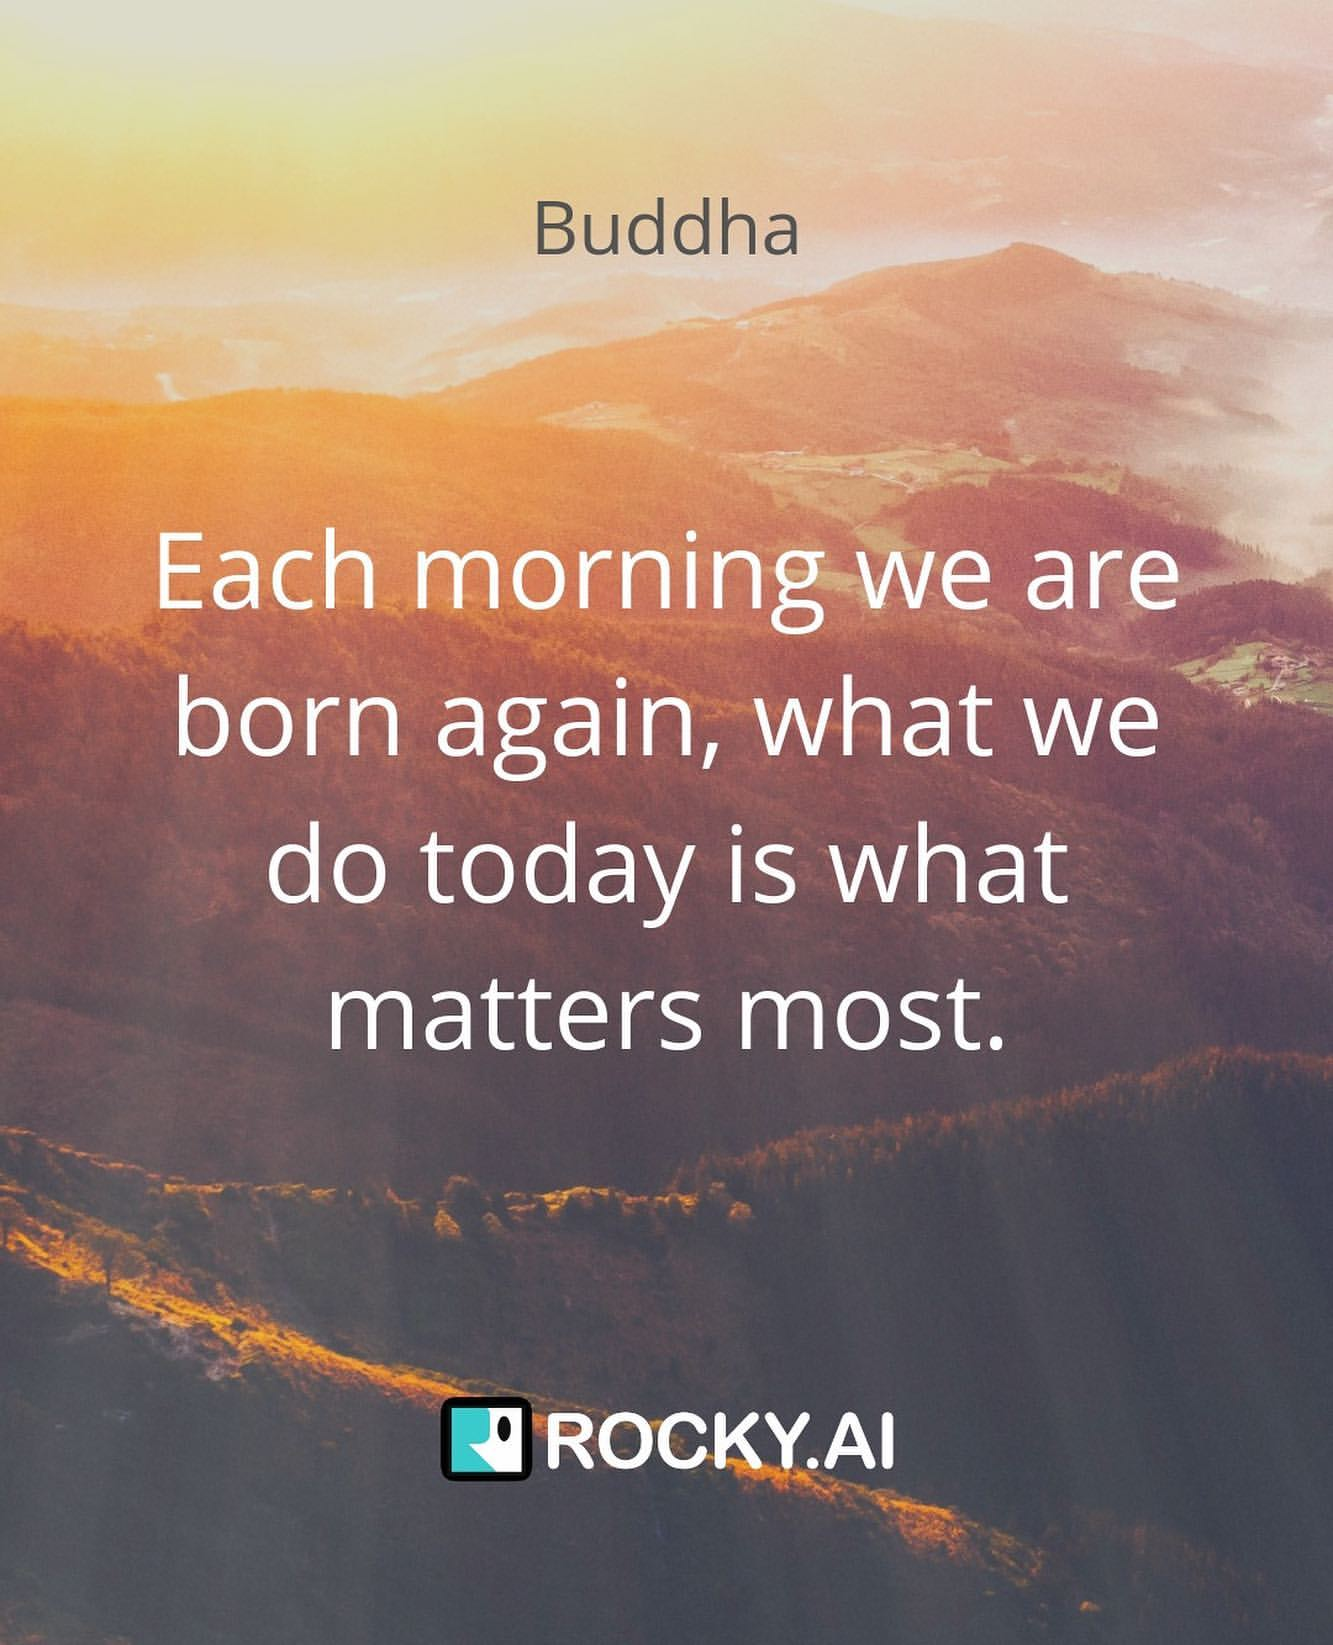 Yesterday might not have been the most satisfying day for you, but we can start strong again today. Set intentions of your day in the morning and live your day to its fullest.